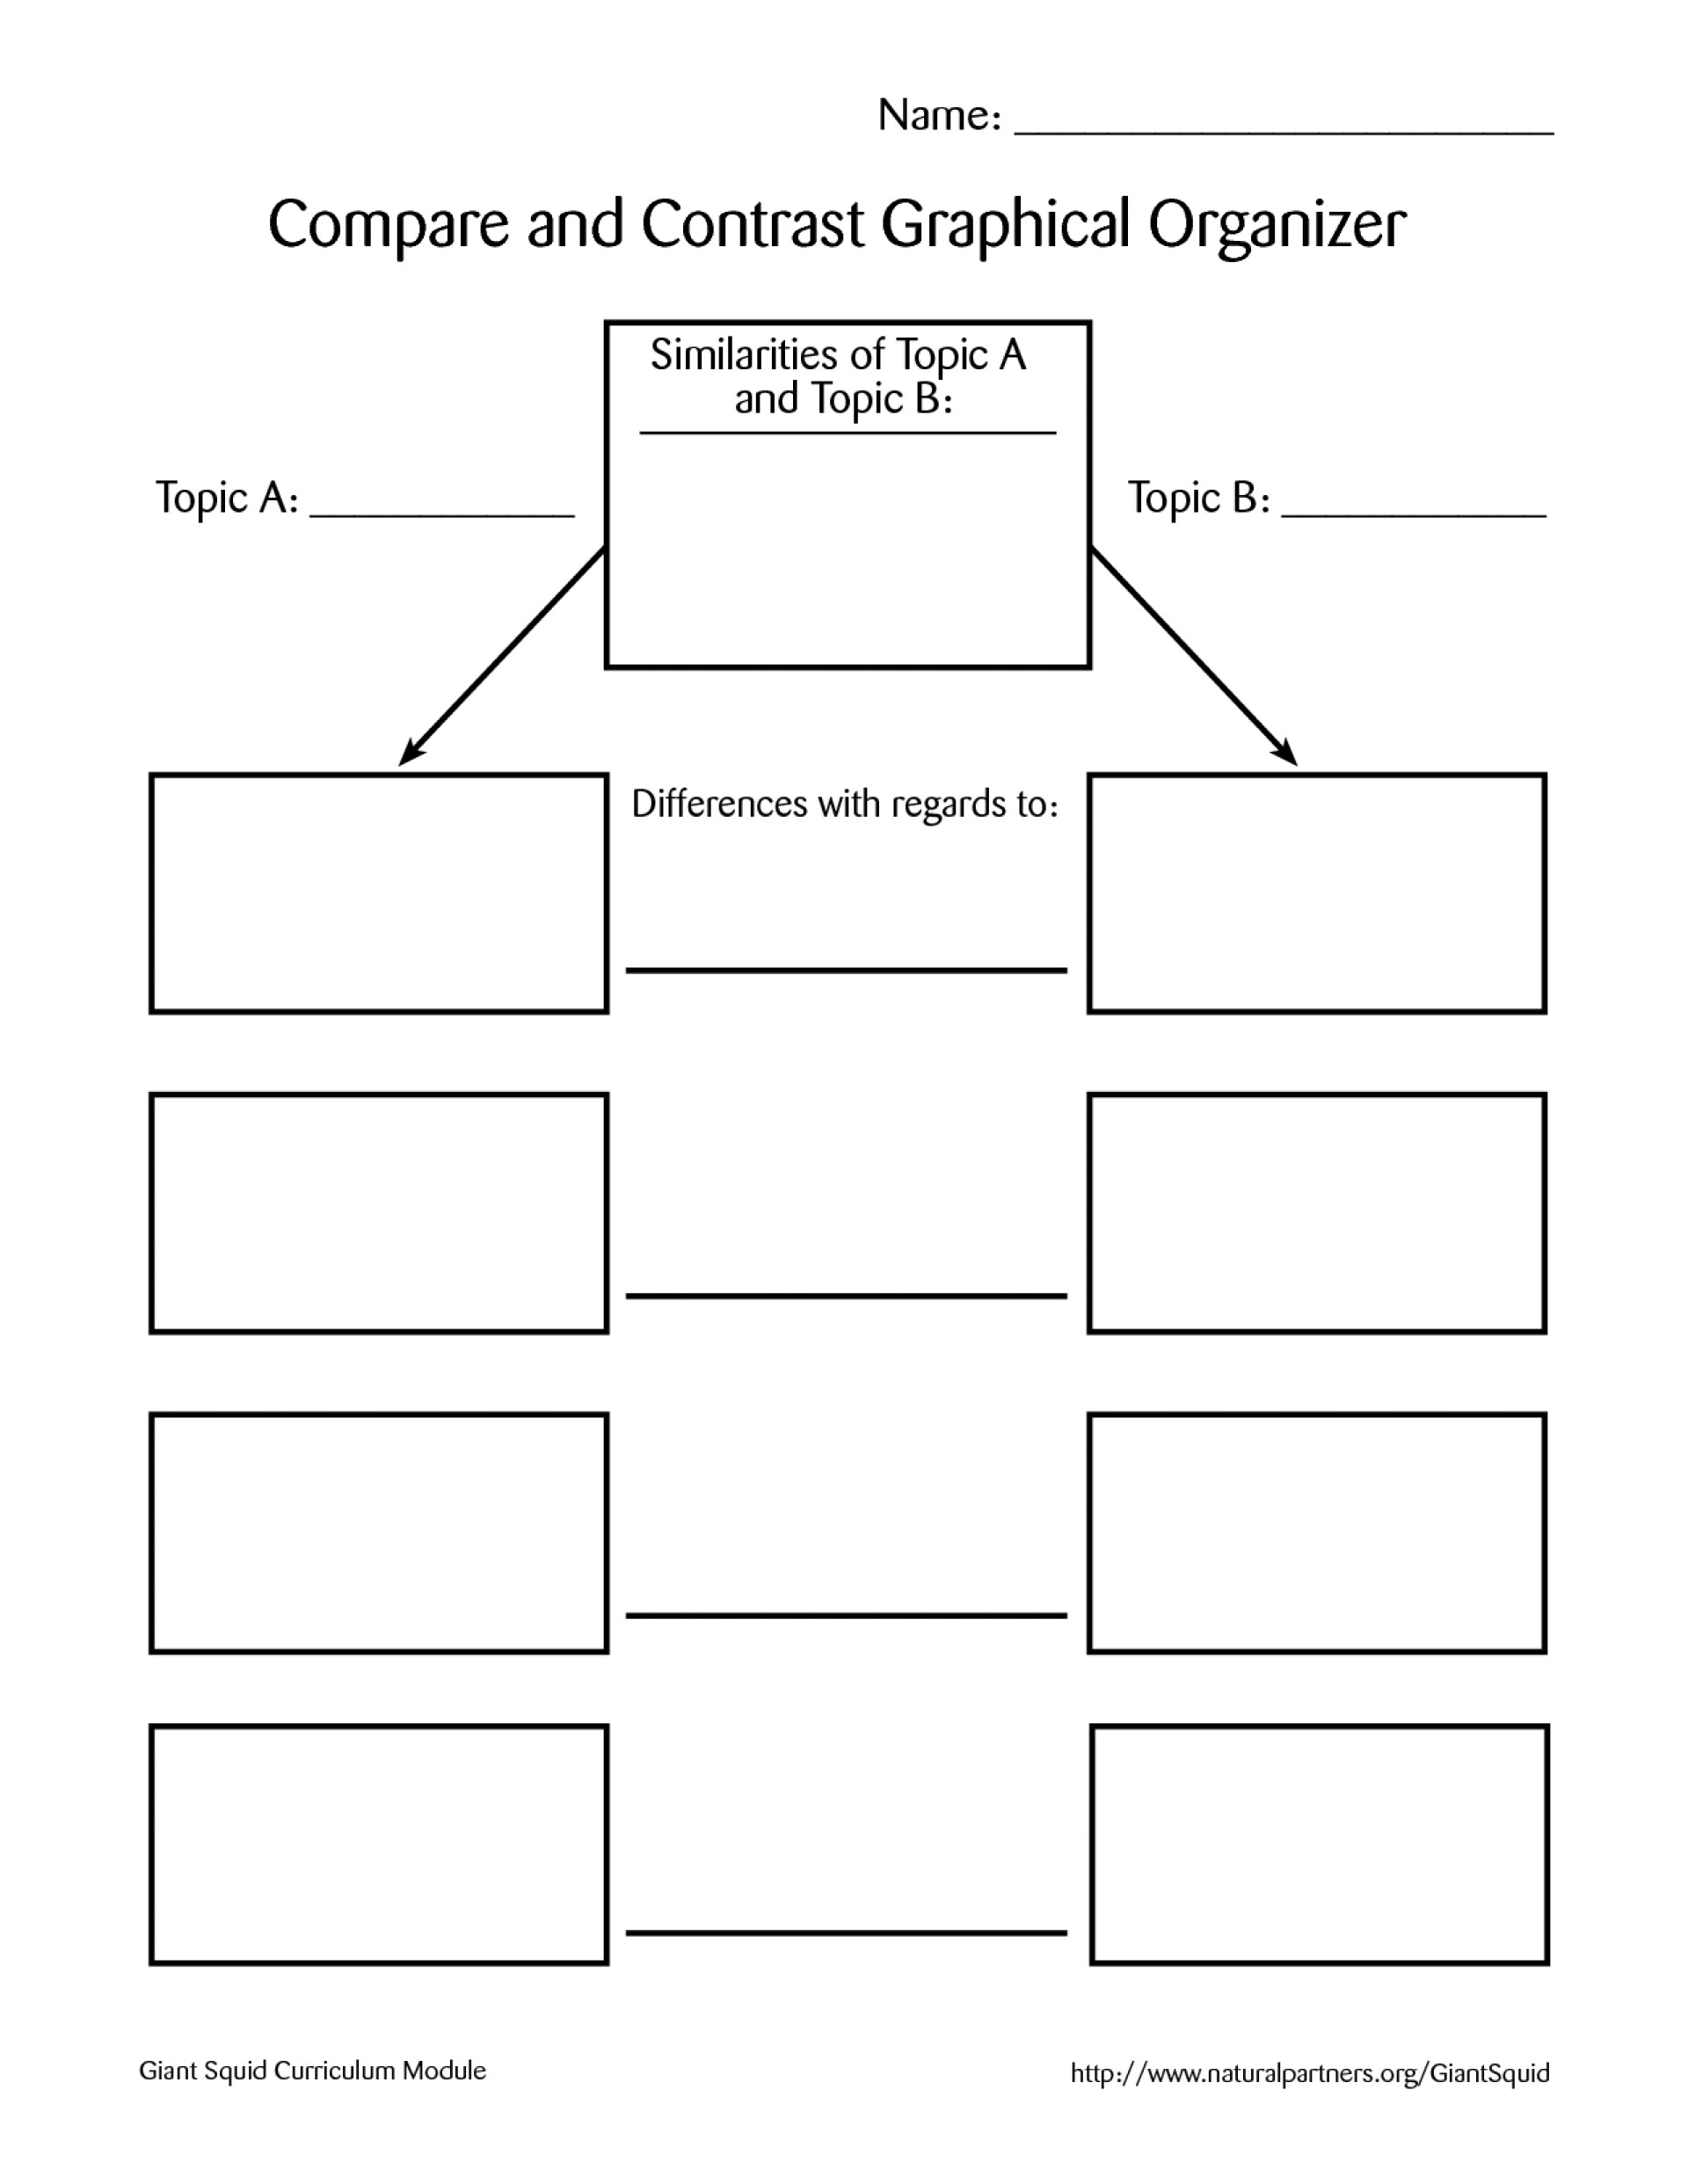 003 Compare And Contrast Essay Graphic Organizer Example Wondrous Middle School 1920